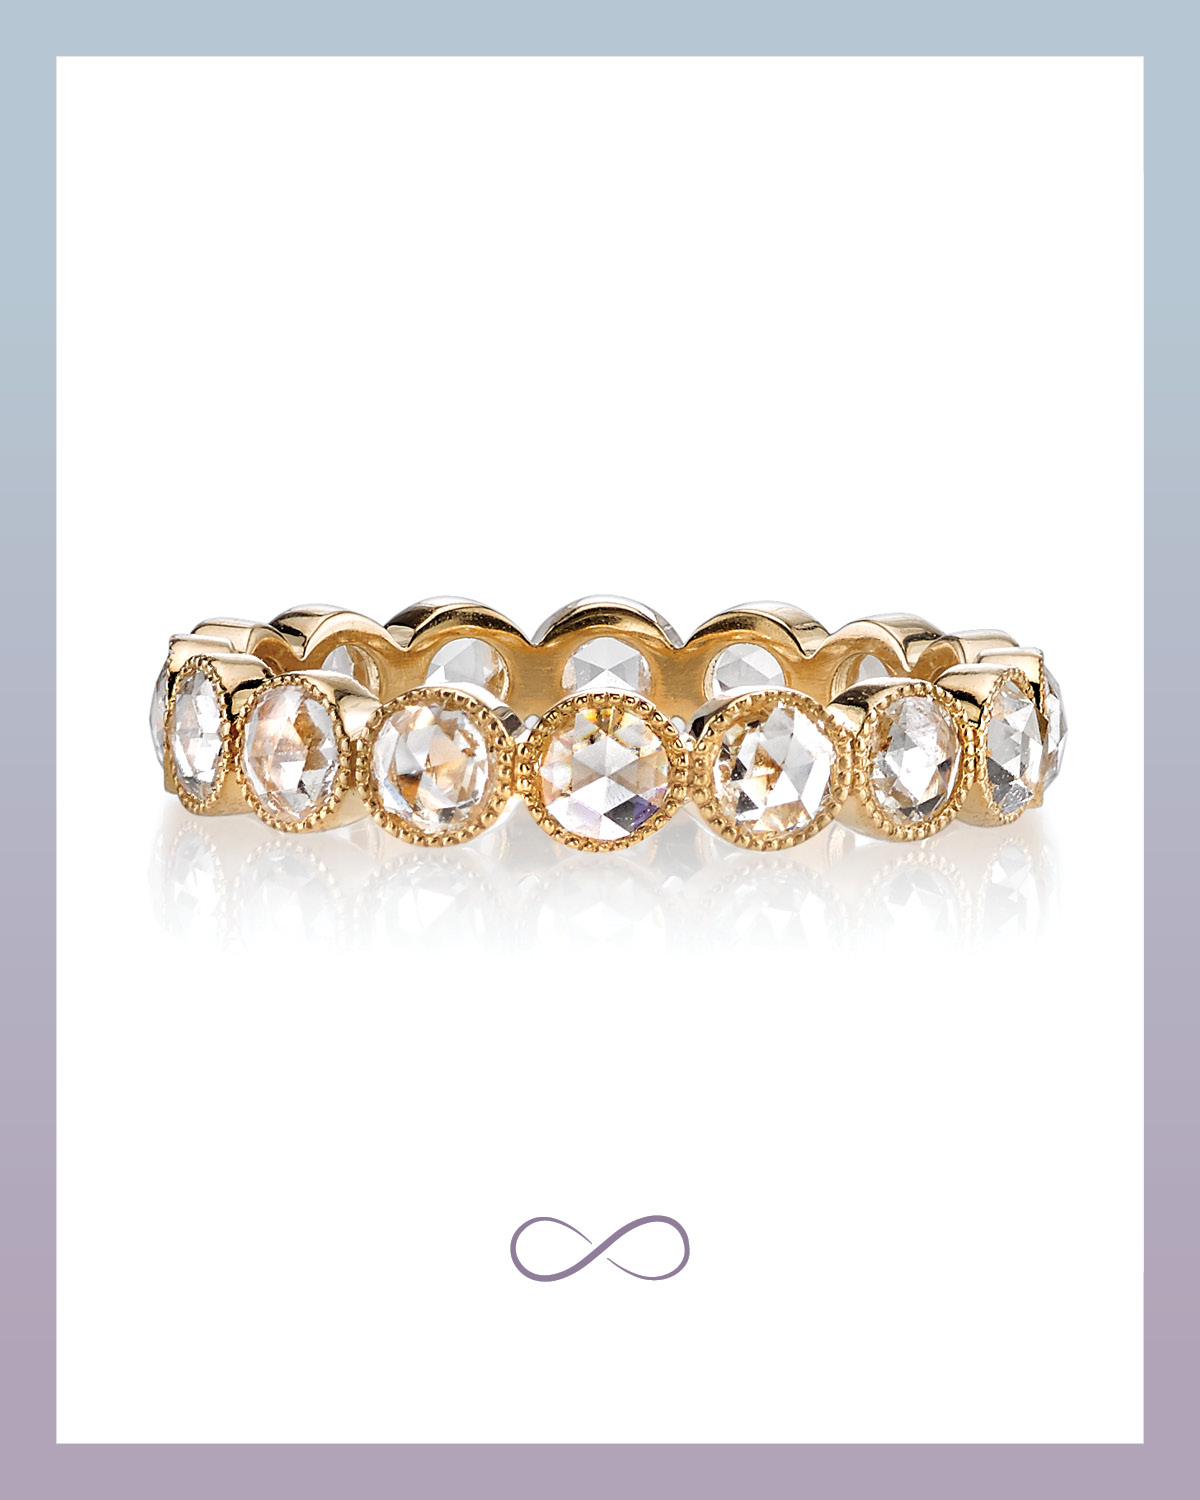 Large Gabby bezel set yellow gold eternity band with rose cut diamonds from Single Stone